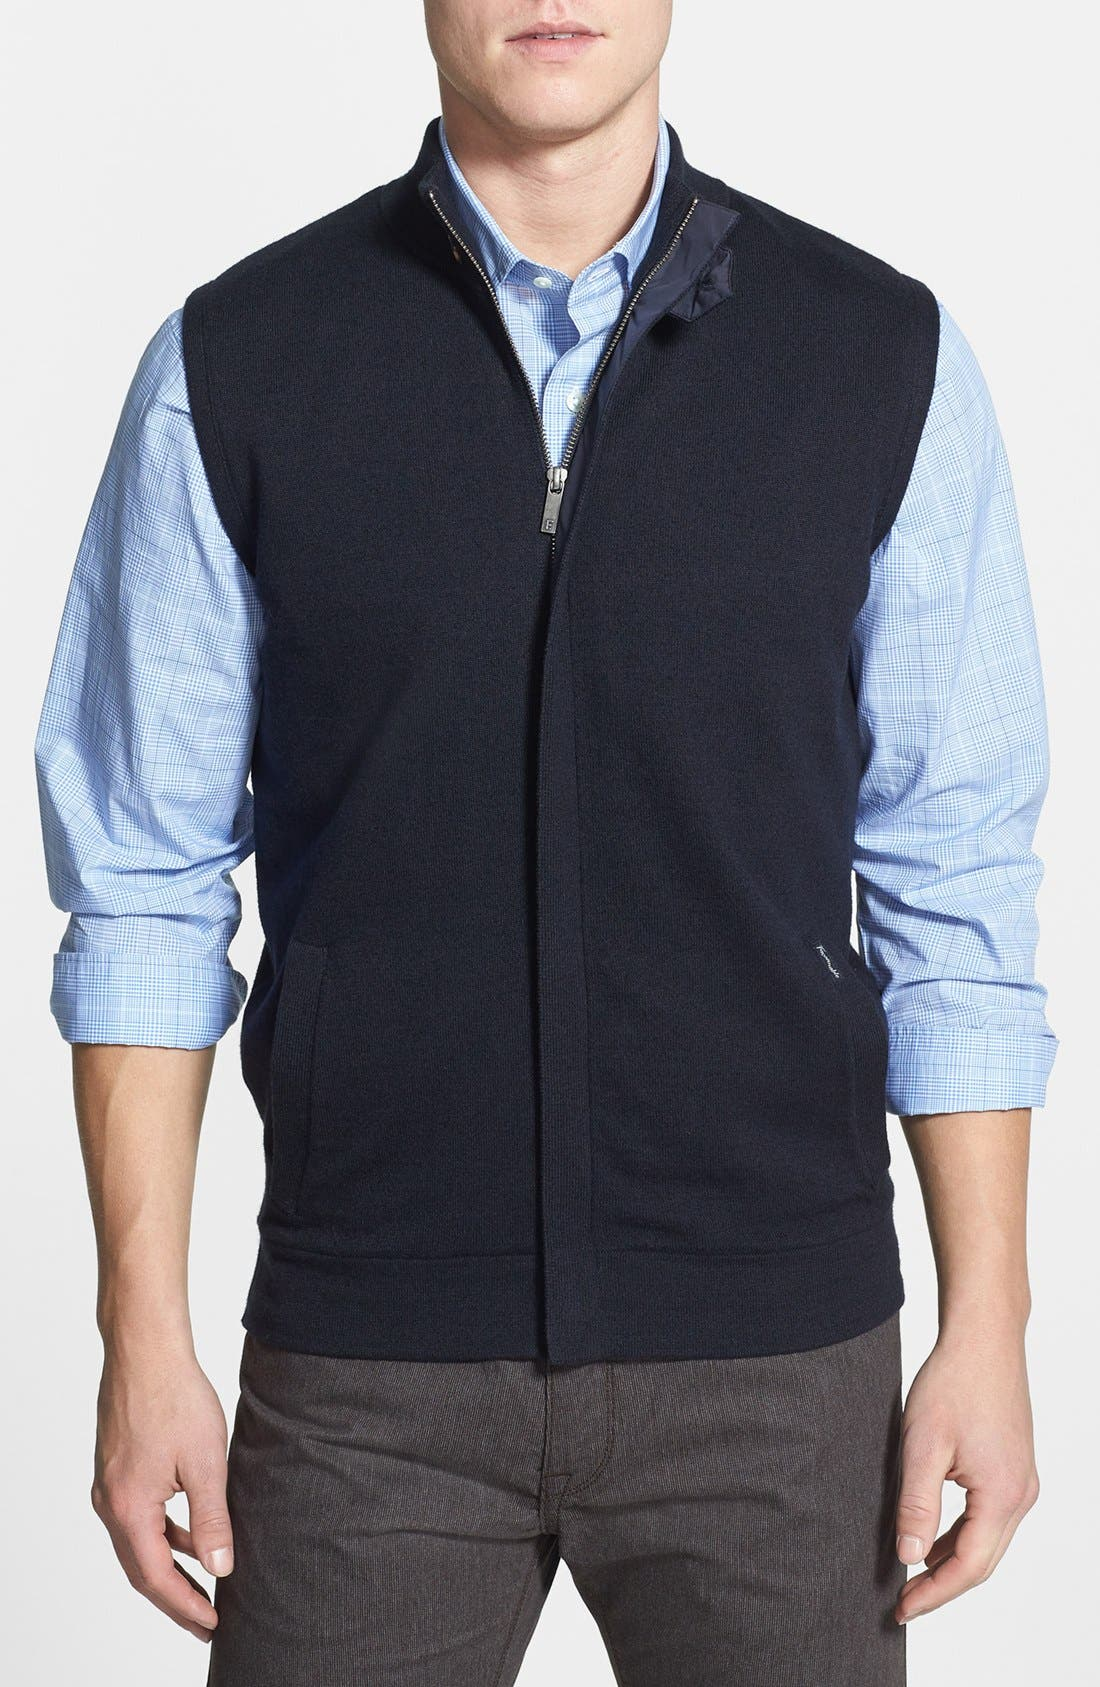 Alternate Image 1 Selected - Façonnable Sweater Wool & Cotton Vest